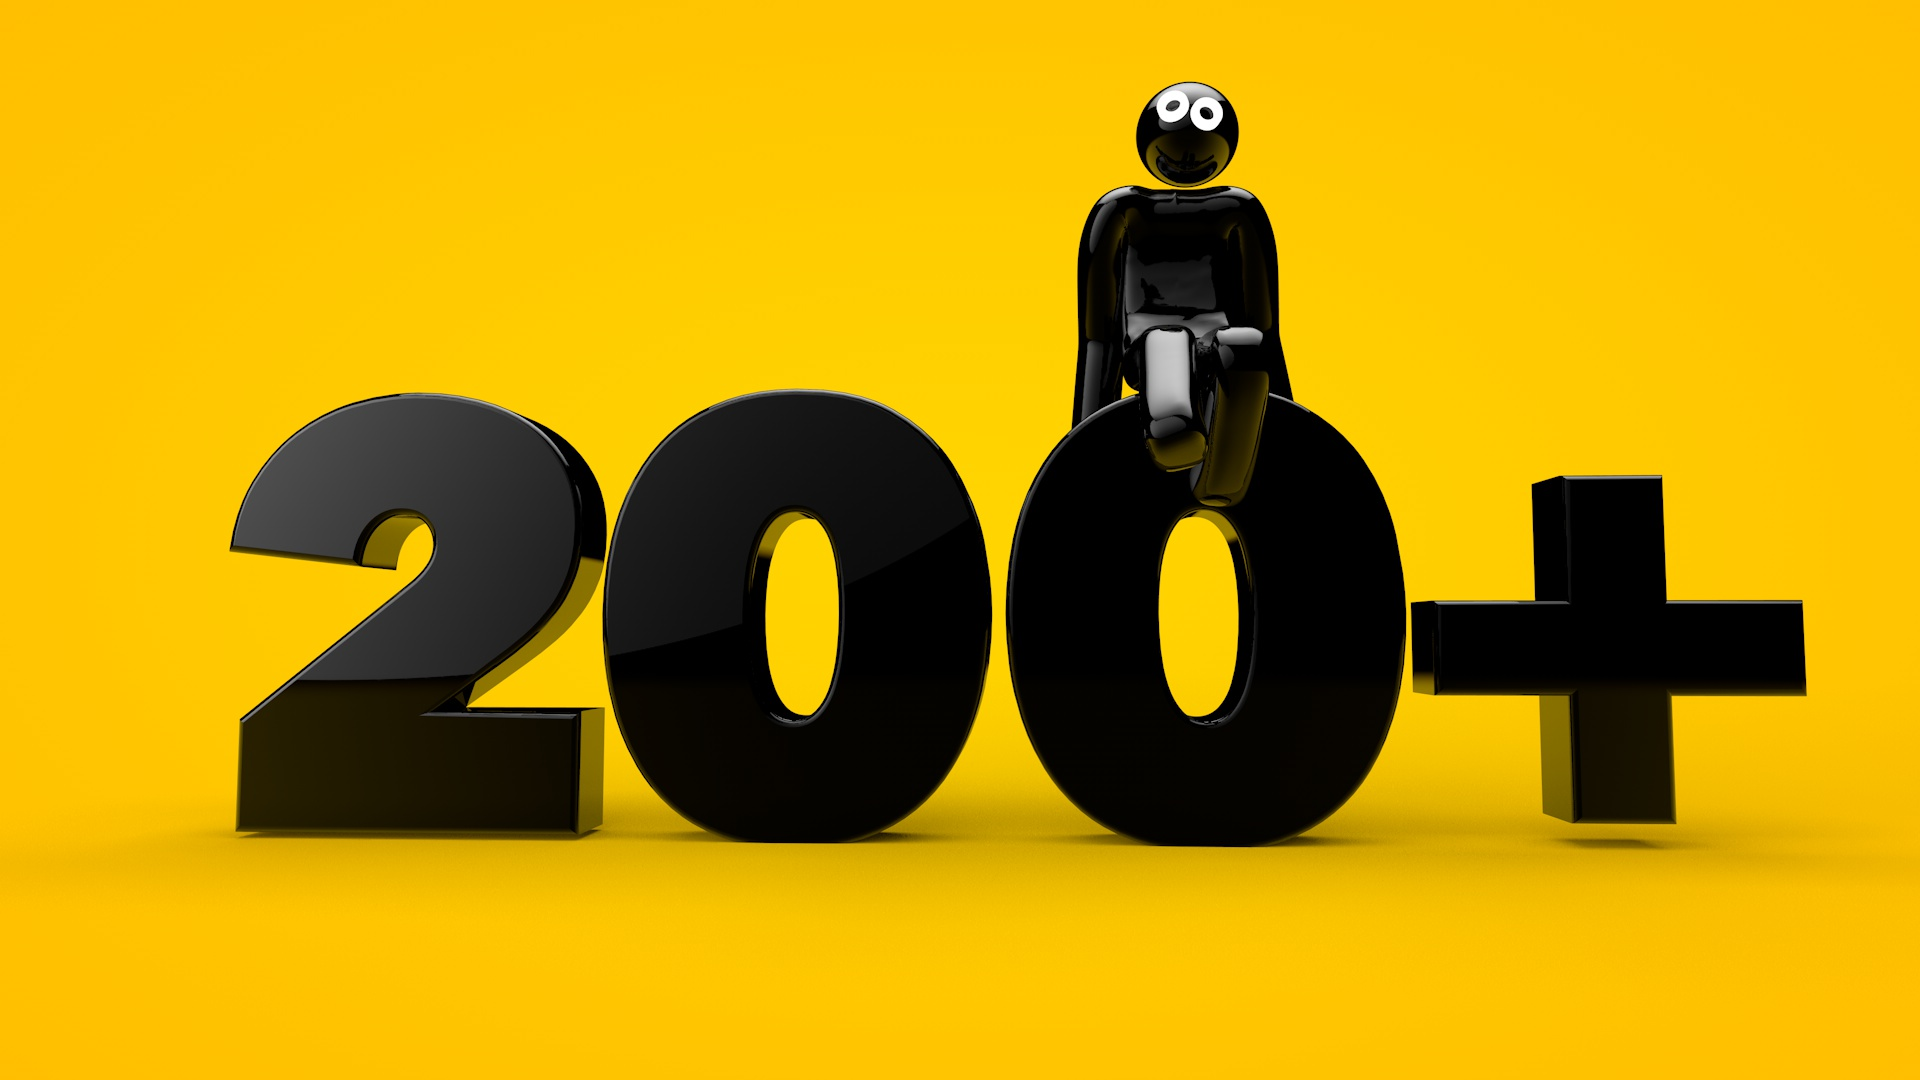 sitting on the 200